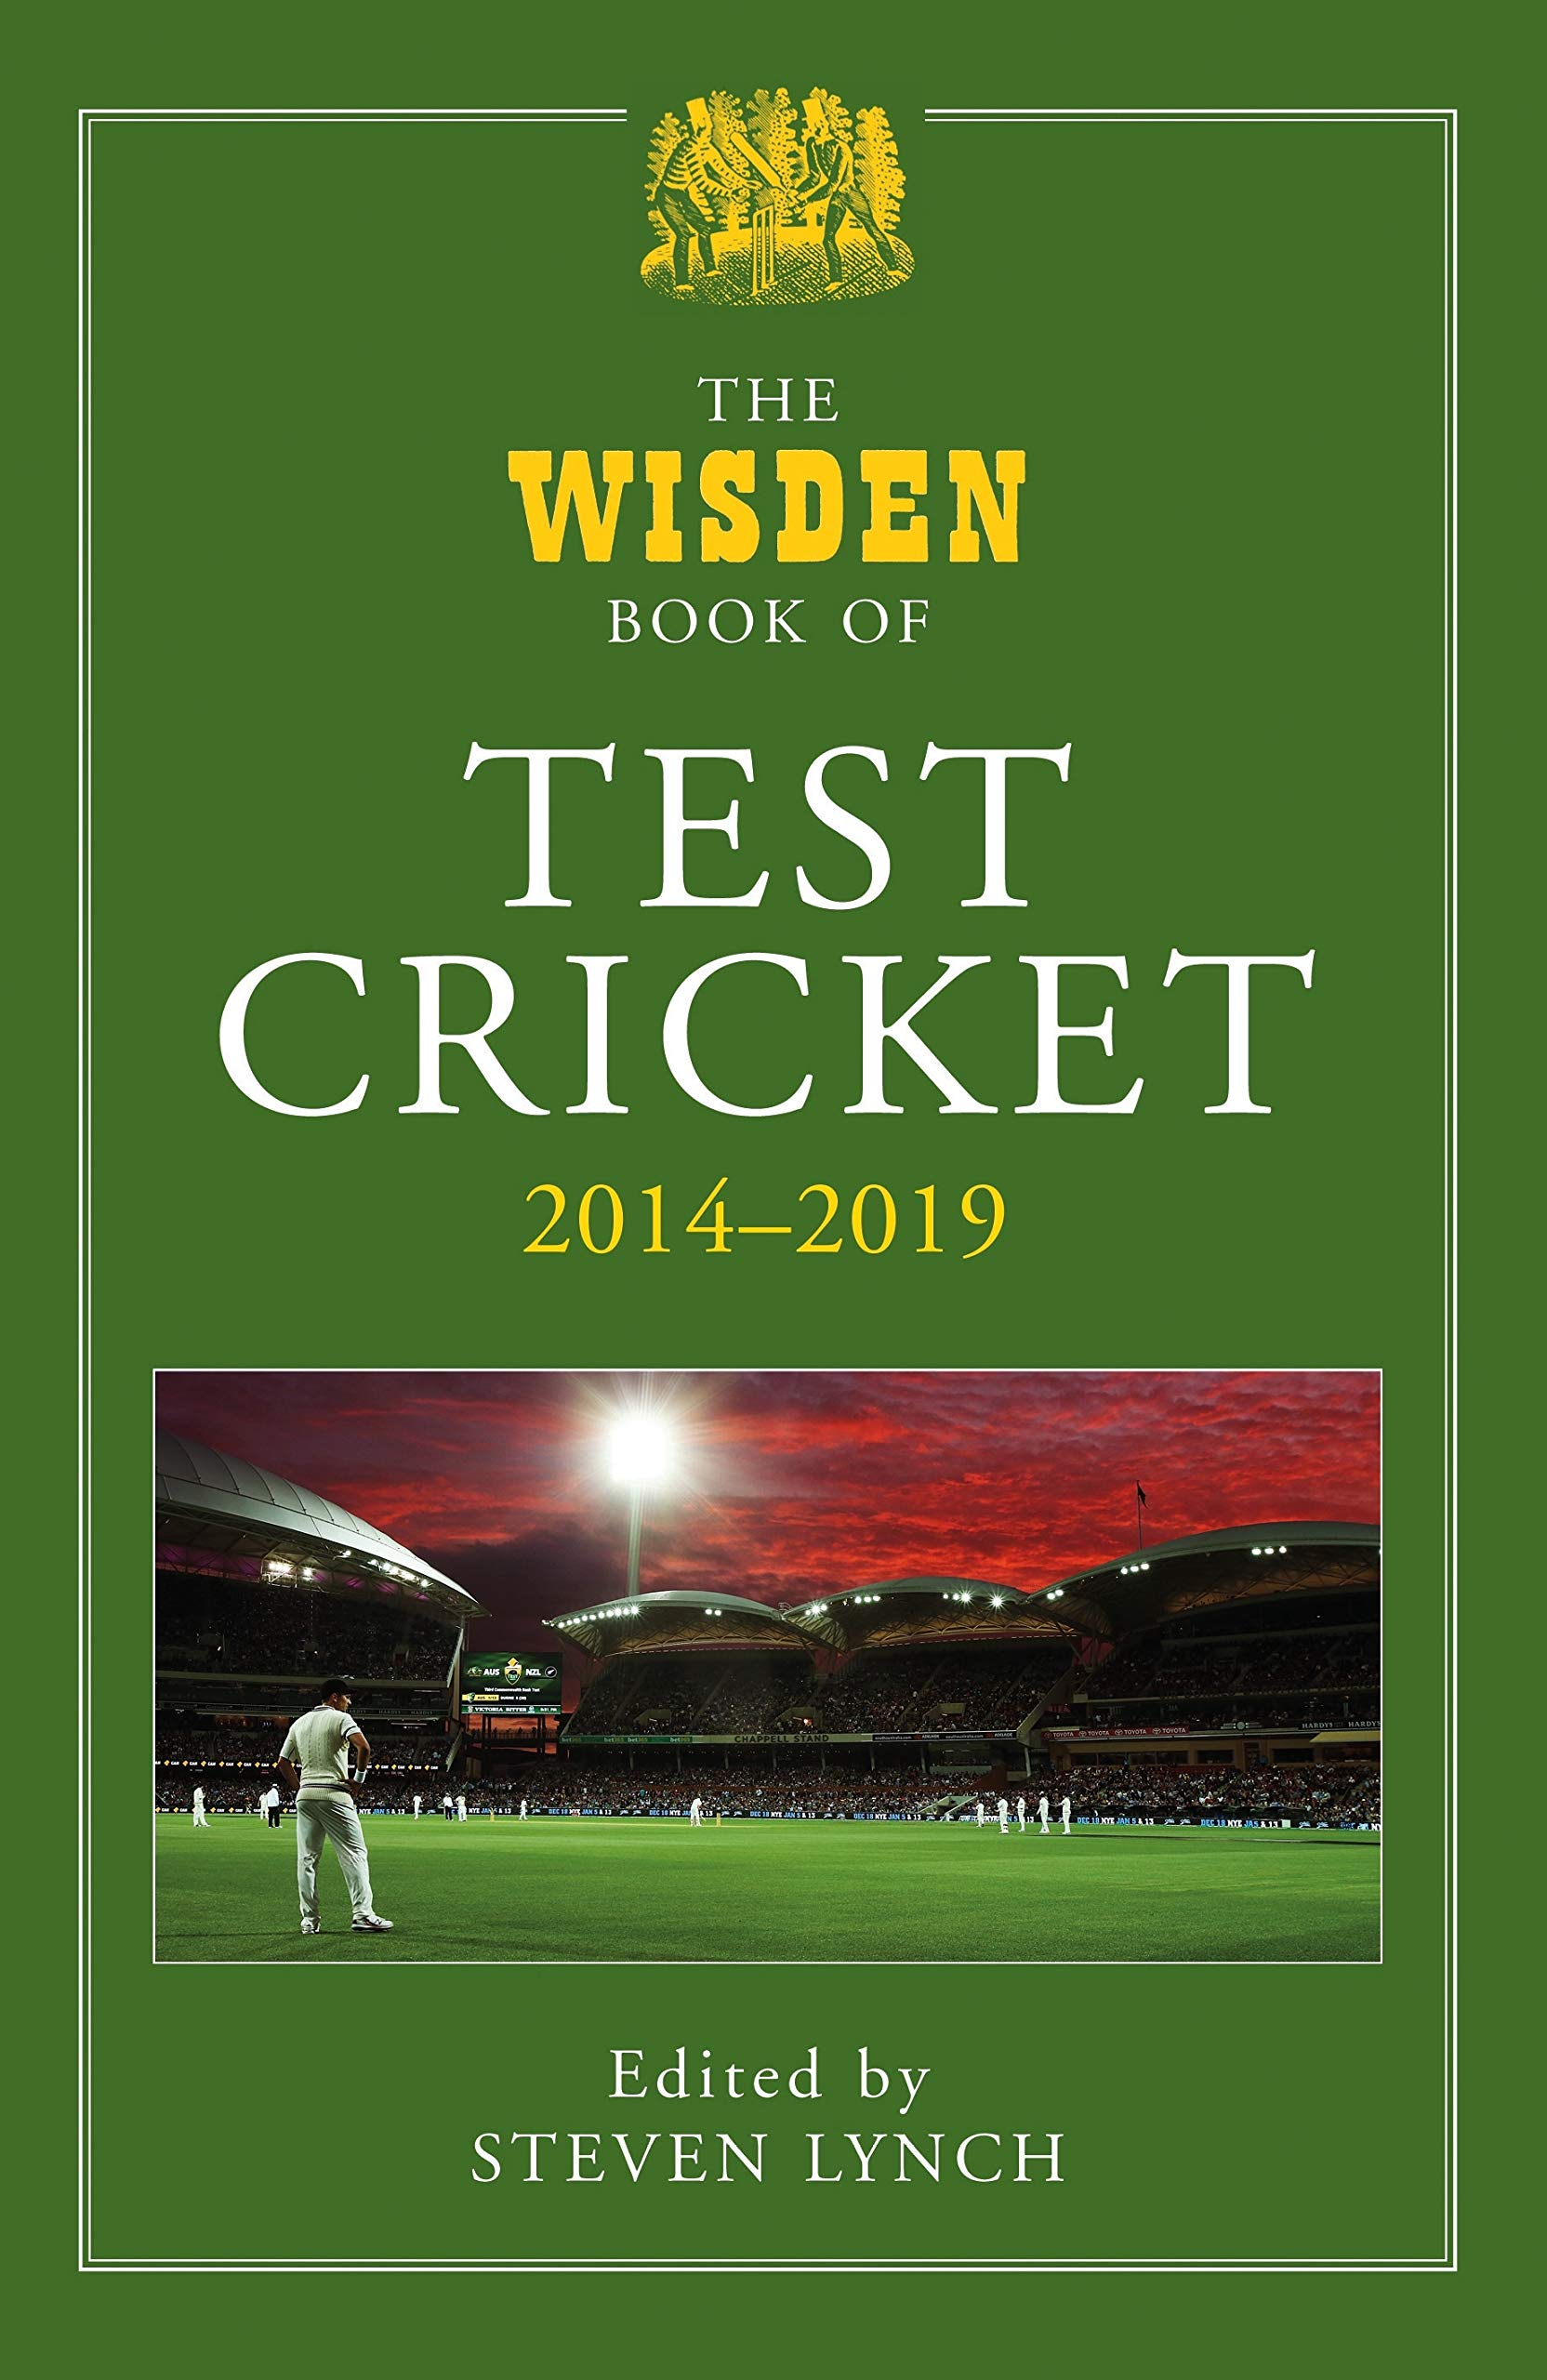 The Wisden Book of Test Cricket 2014-2019, edited by Steven Lynch. Bloomsbury, £40